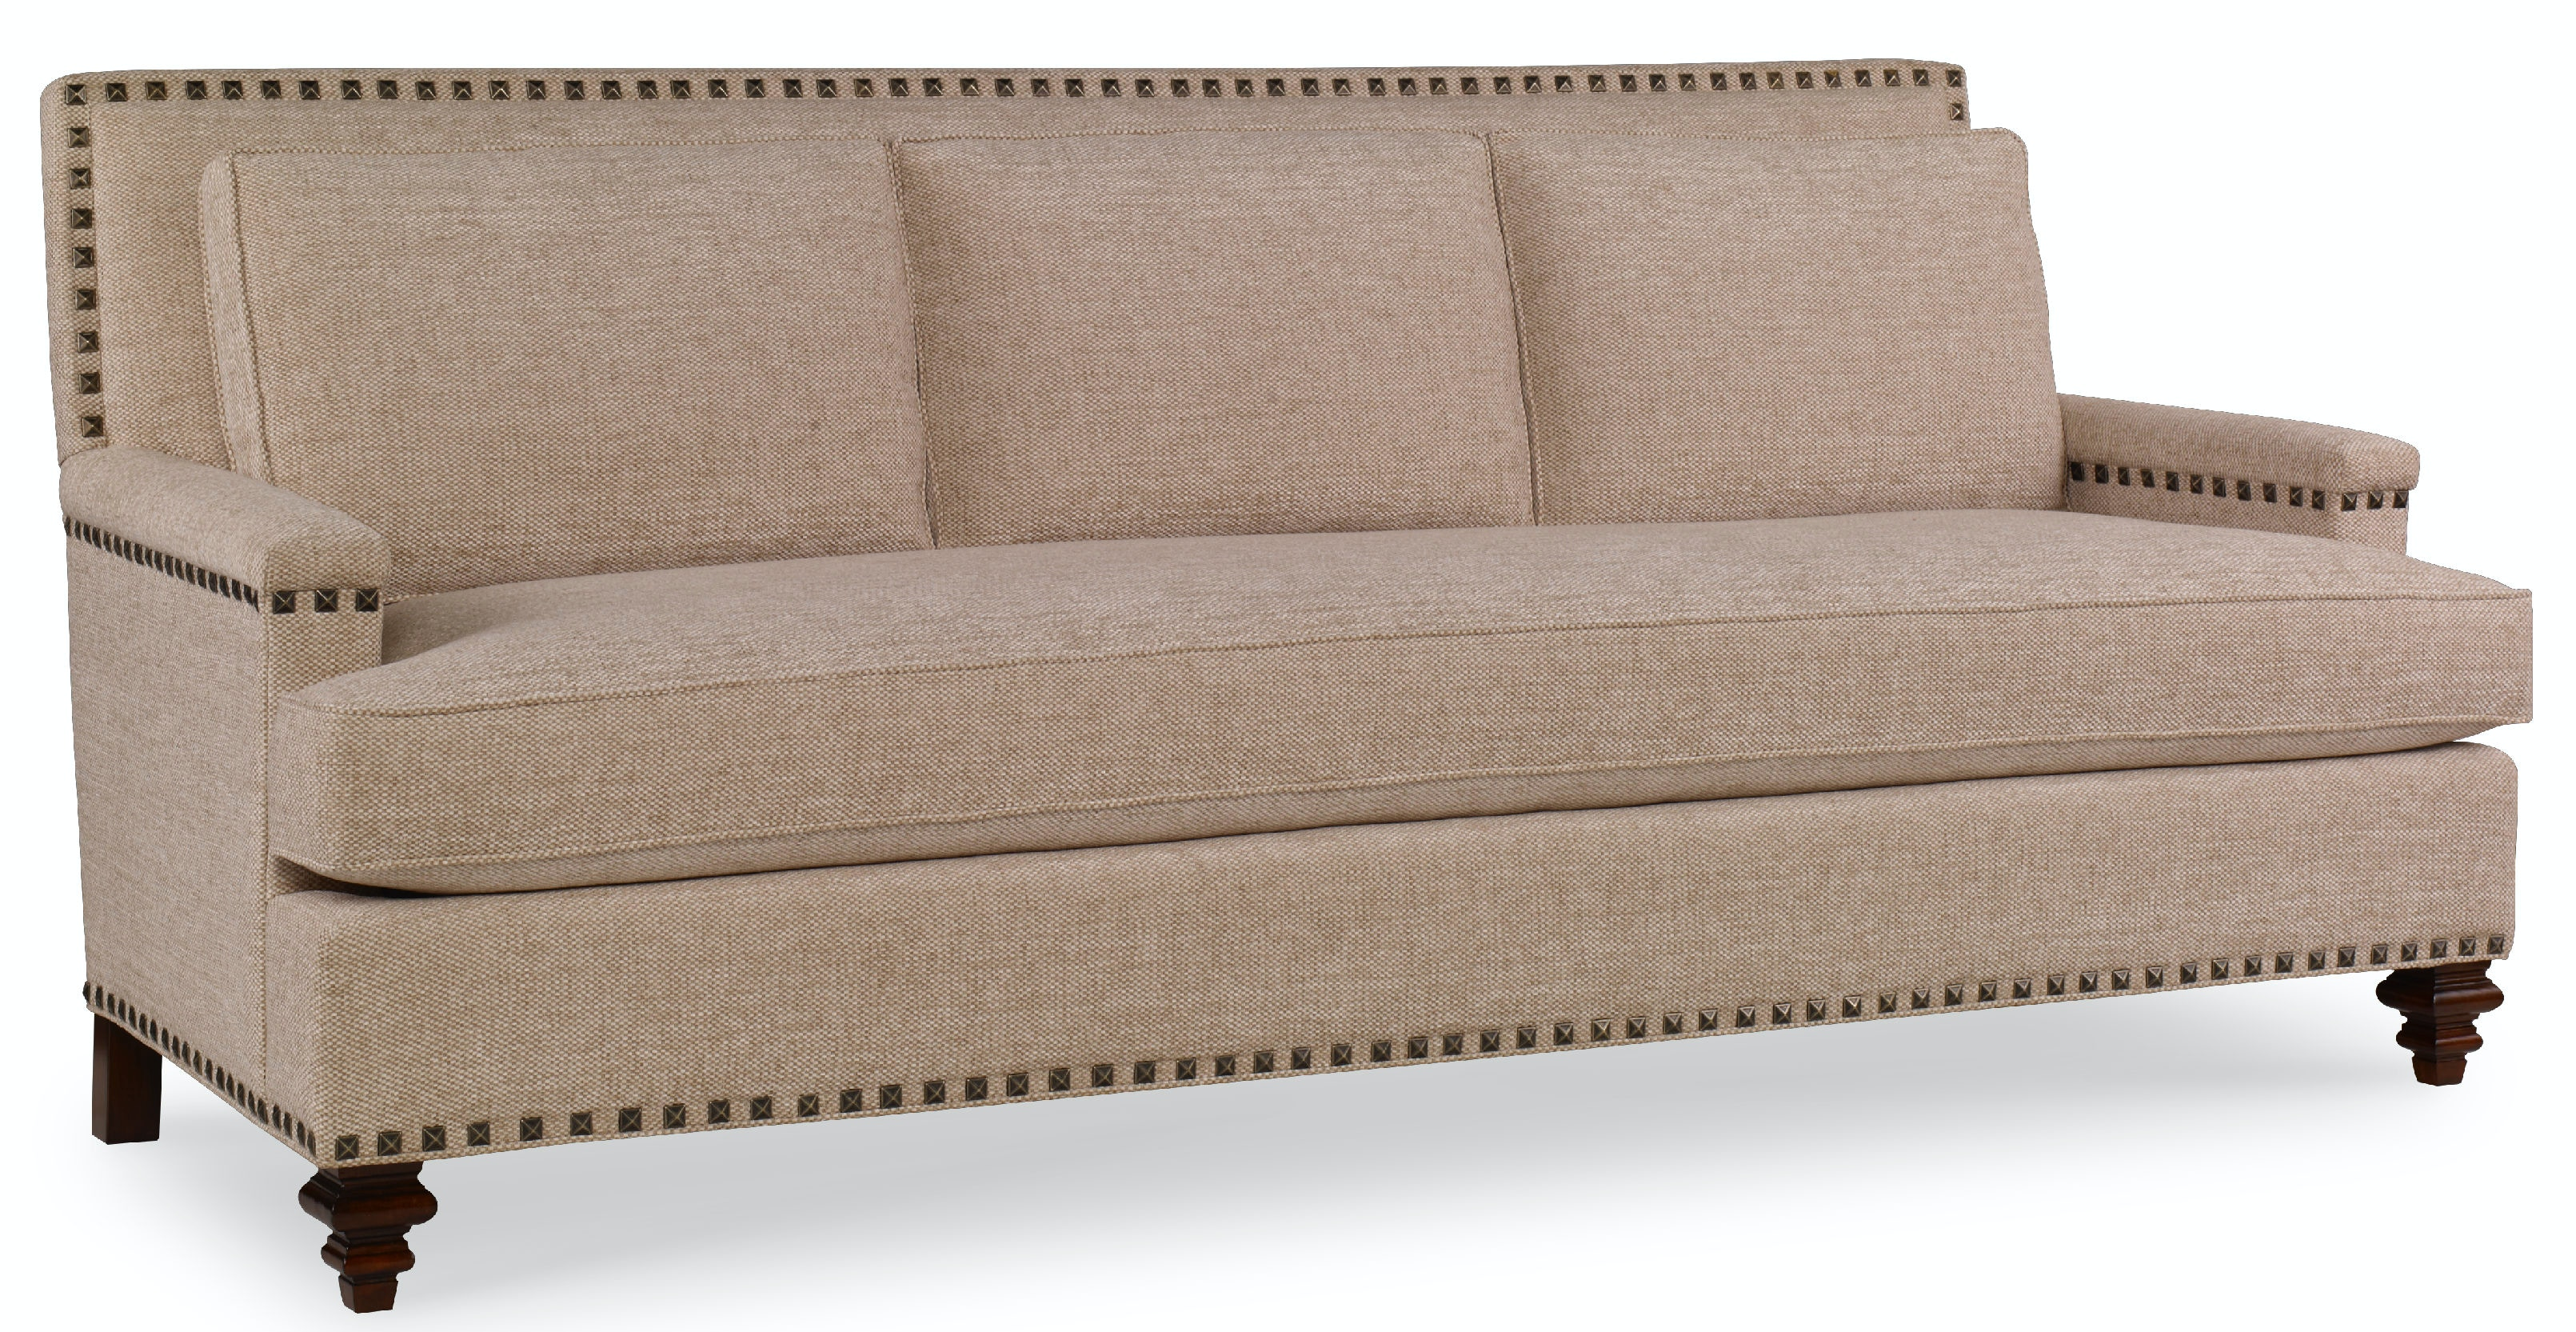 EJ Victor Living Room Jack Fhillips Colby Sofa Exposed